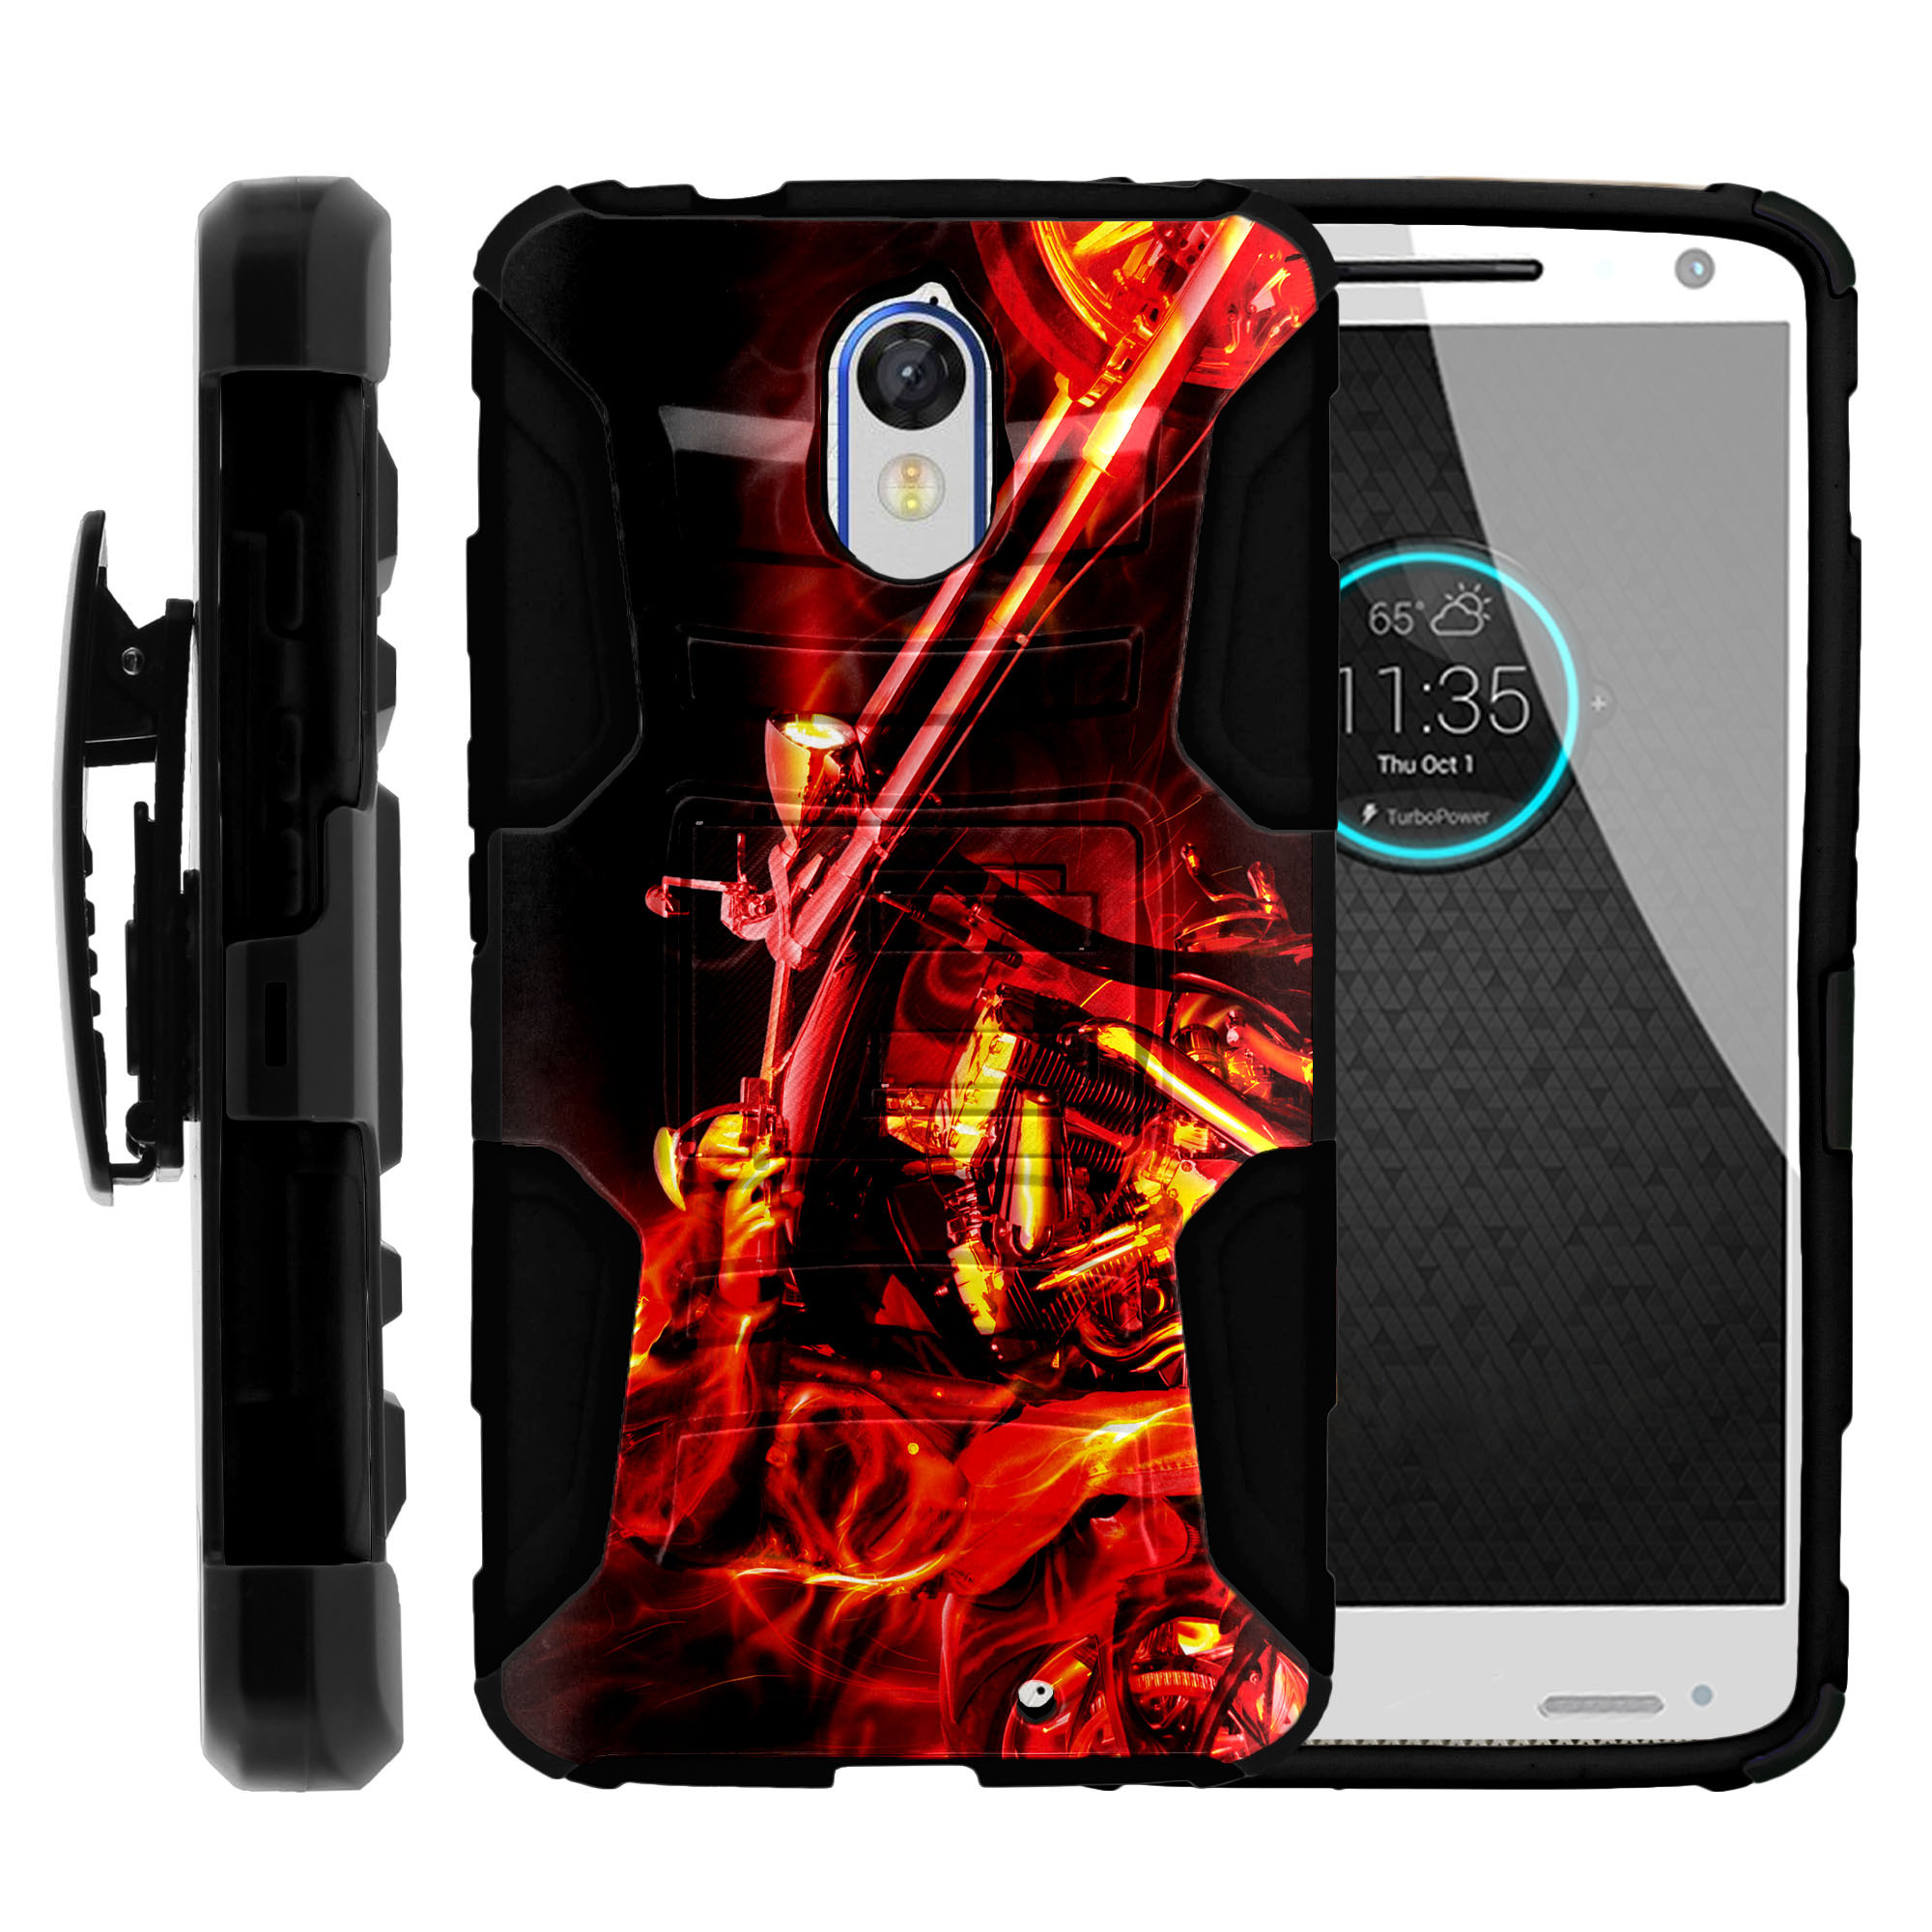 Motorola Droid Turbo 2 XT1585 Miniturtle® Clip Armor Dual Layer Case Rugged Exterior with Built in Kickstand + Holster - Motorcycle in Flames